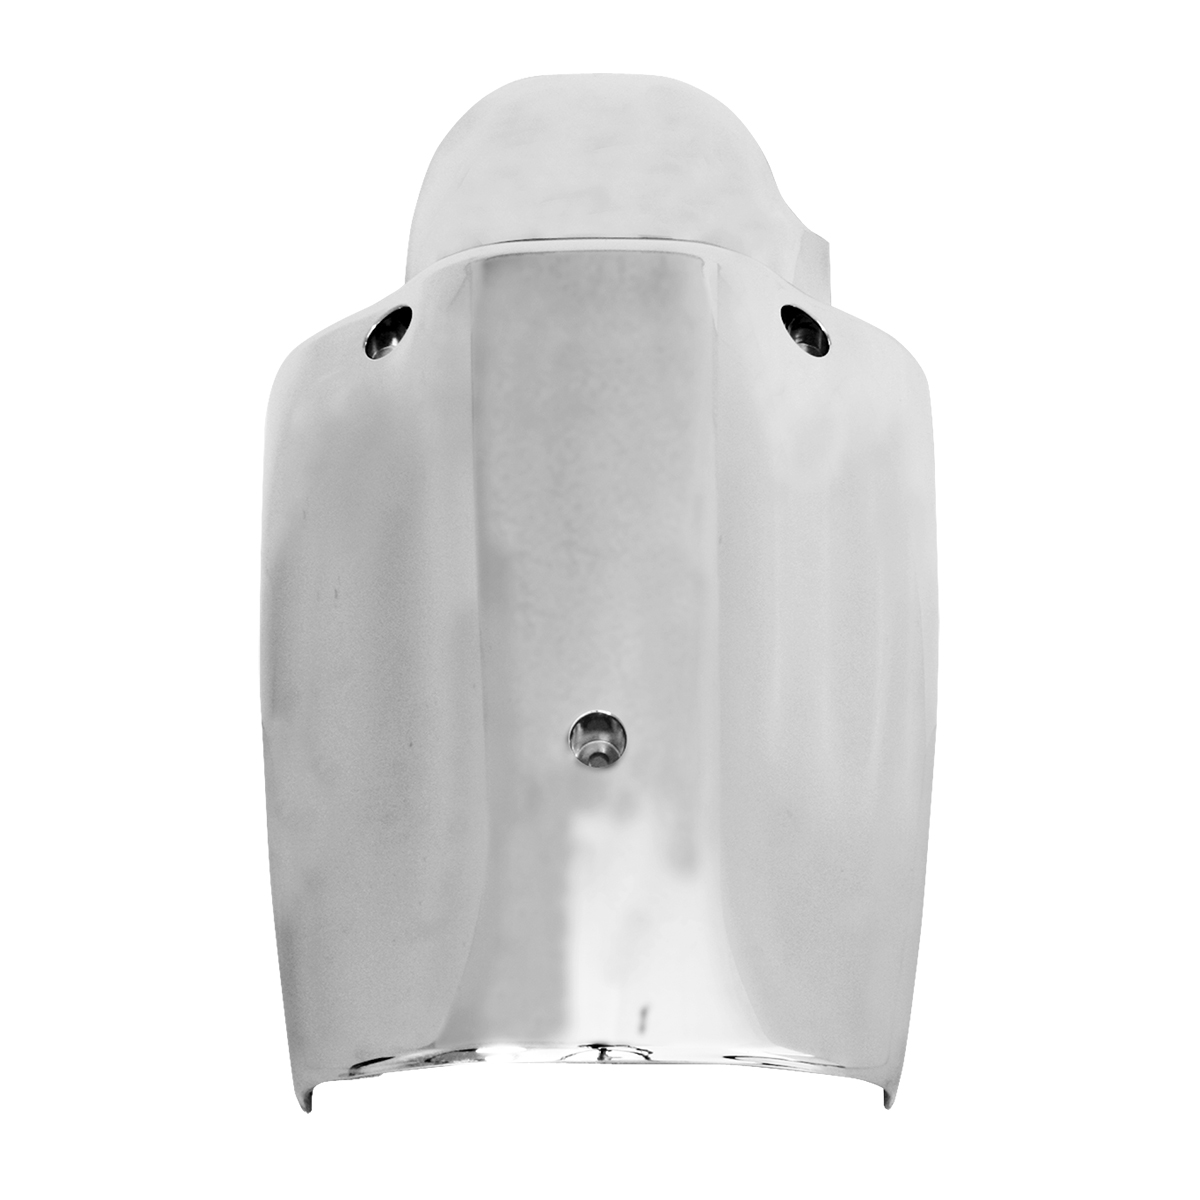 67919 Steering Column Cover Set for Kenworth W&T 2006 to 2007